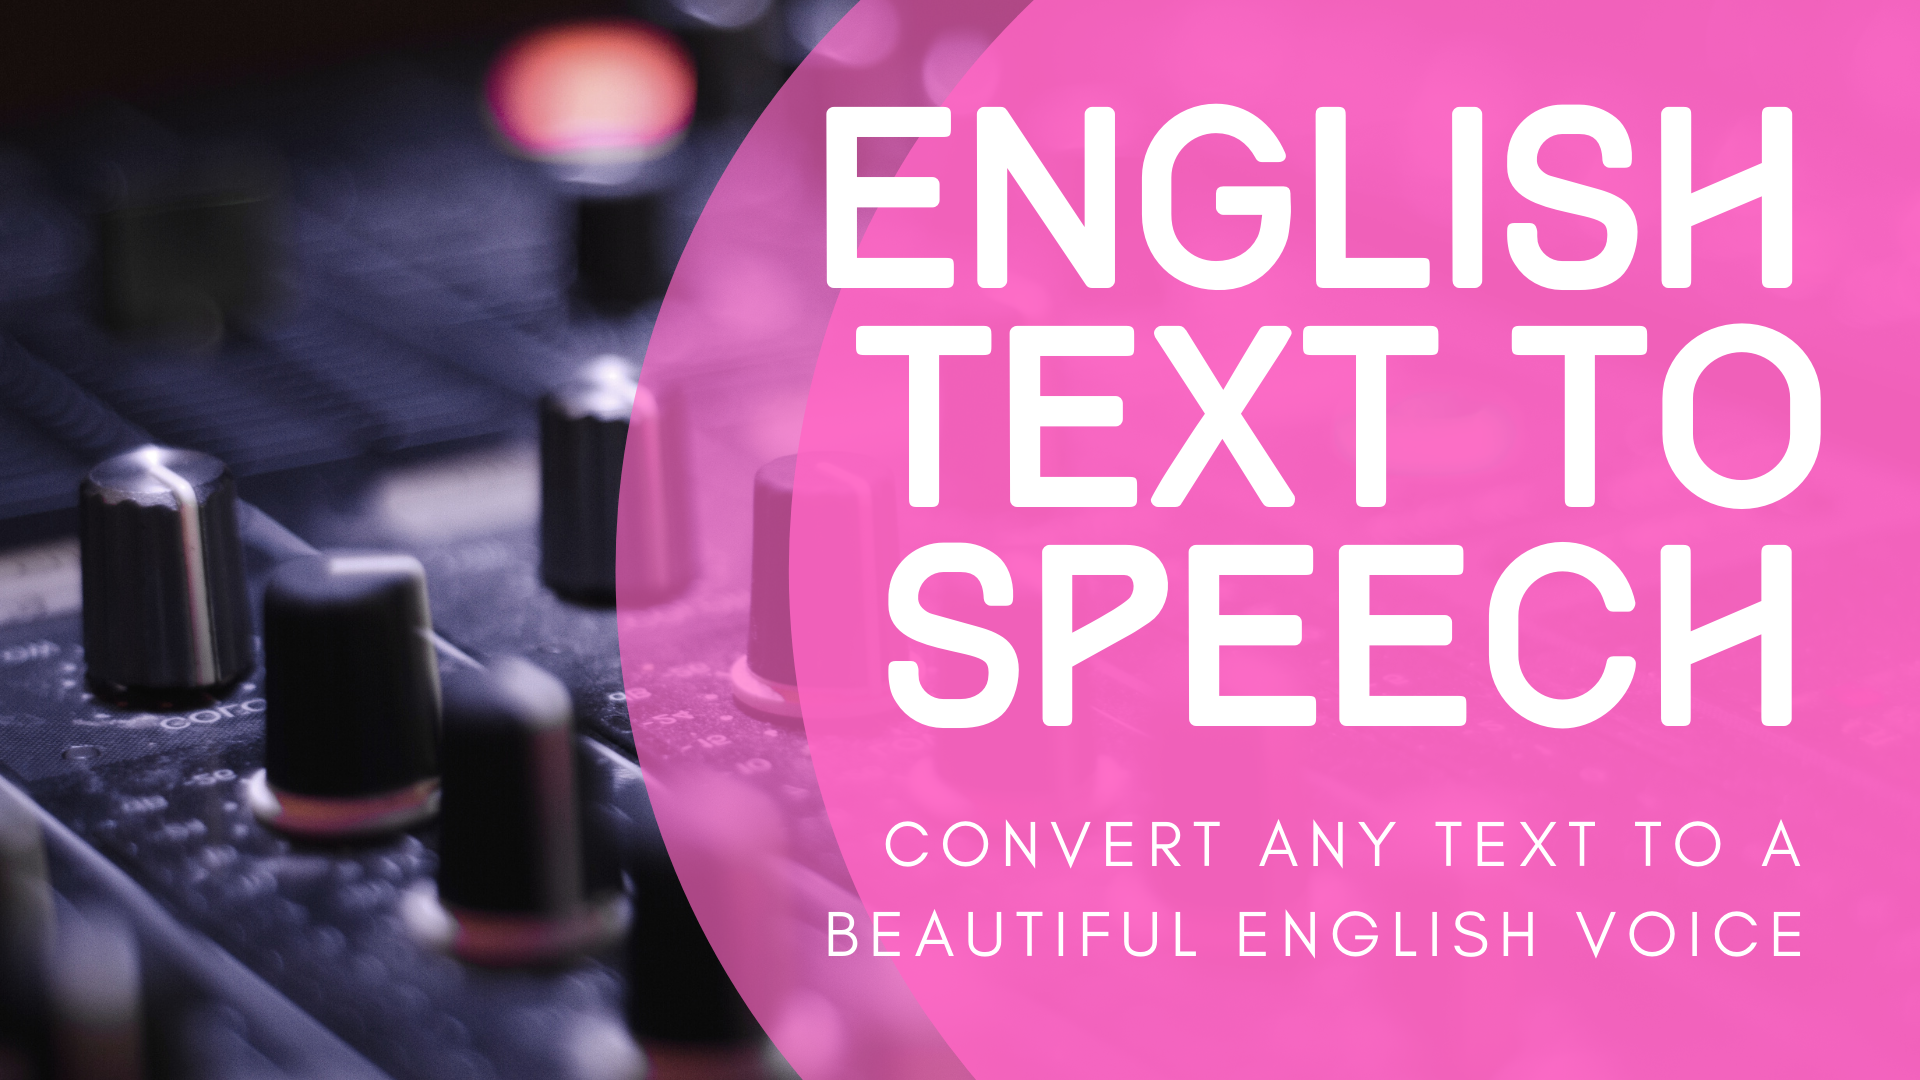 I Will Convert Any Text Into Beautiful speech/ Voice Over For You